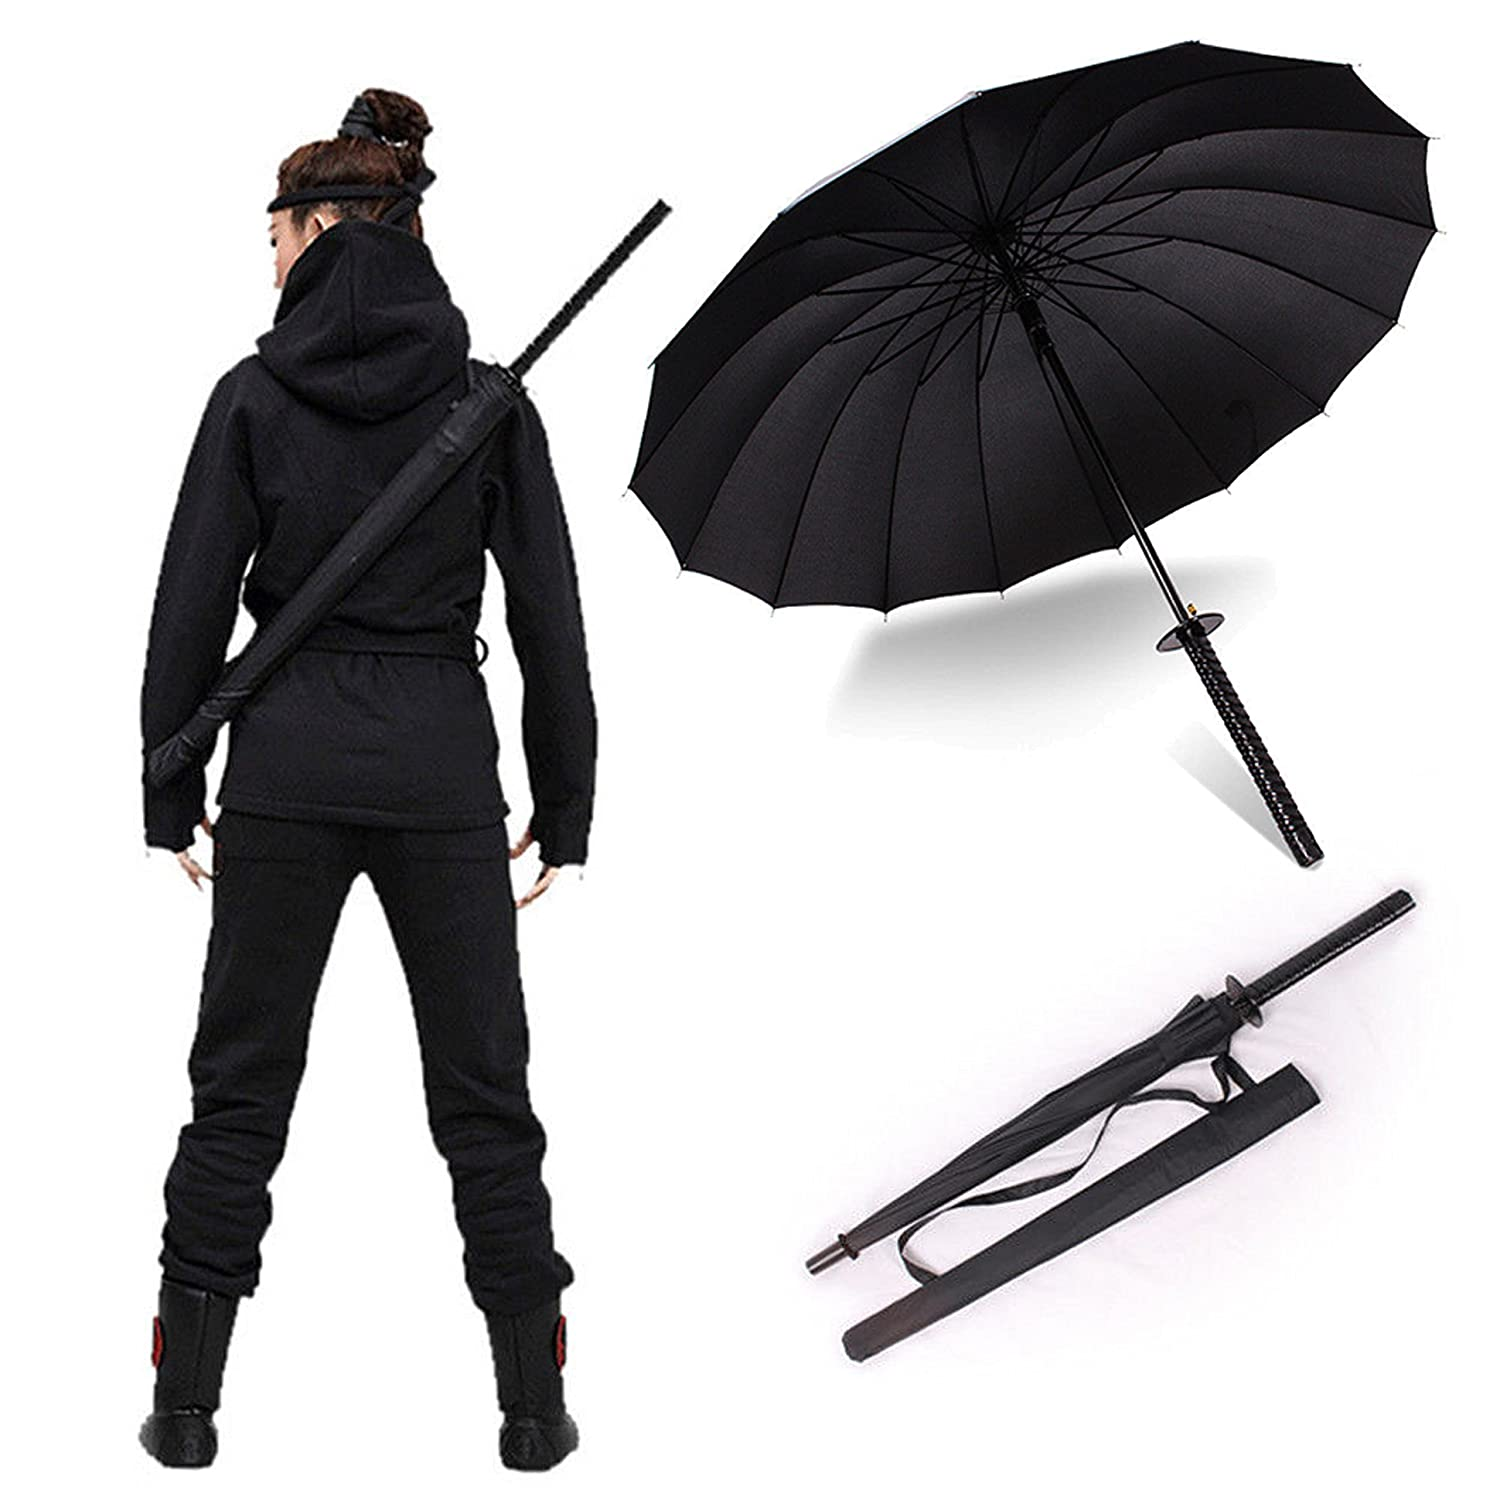 Samurai Umbrella Ninja Sword